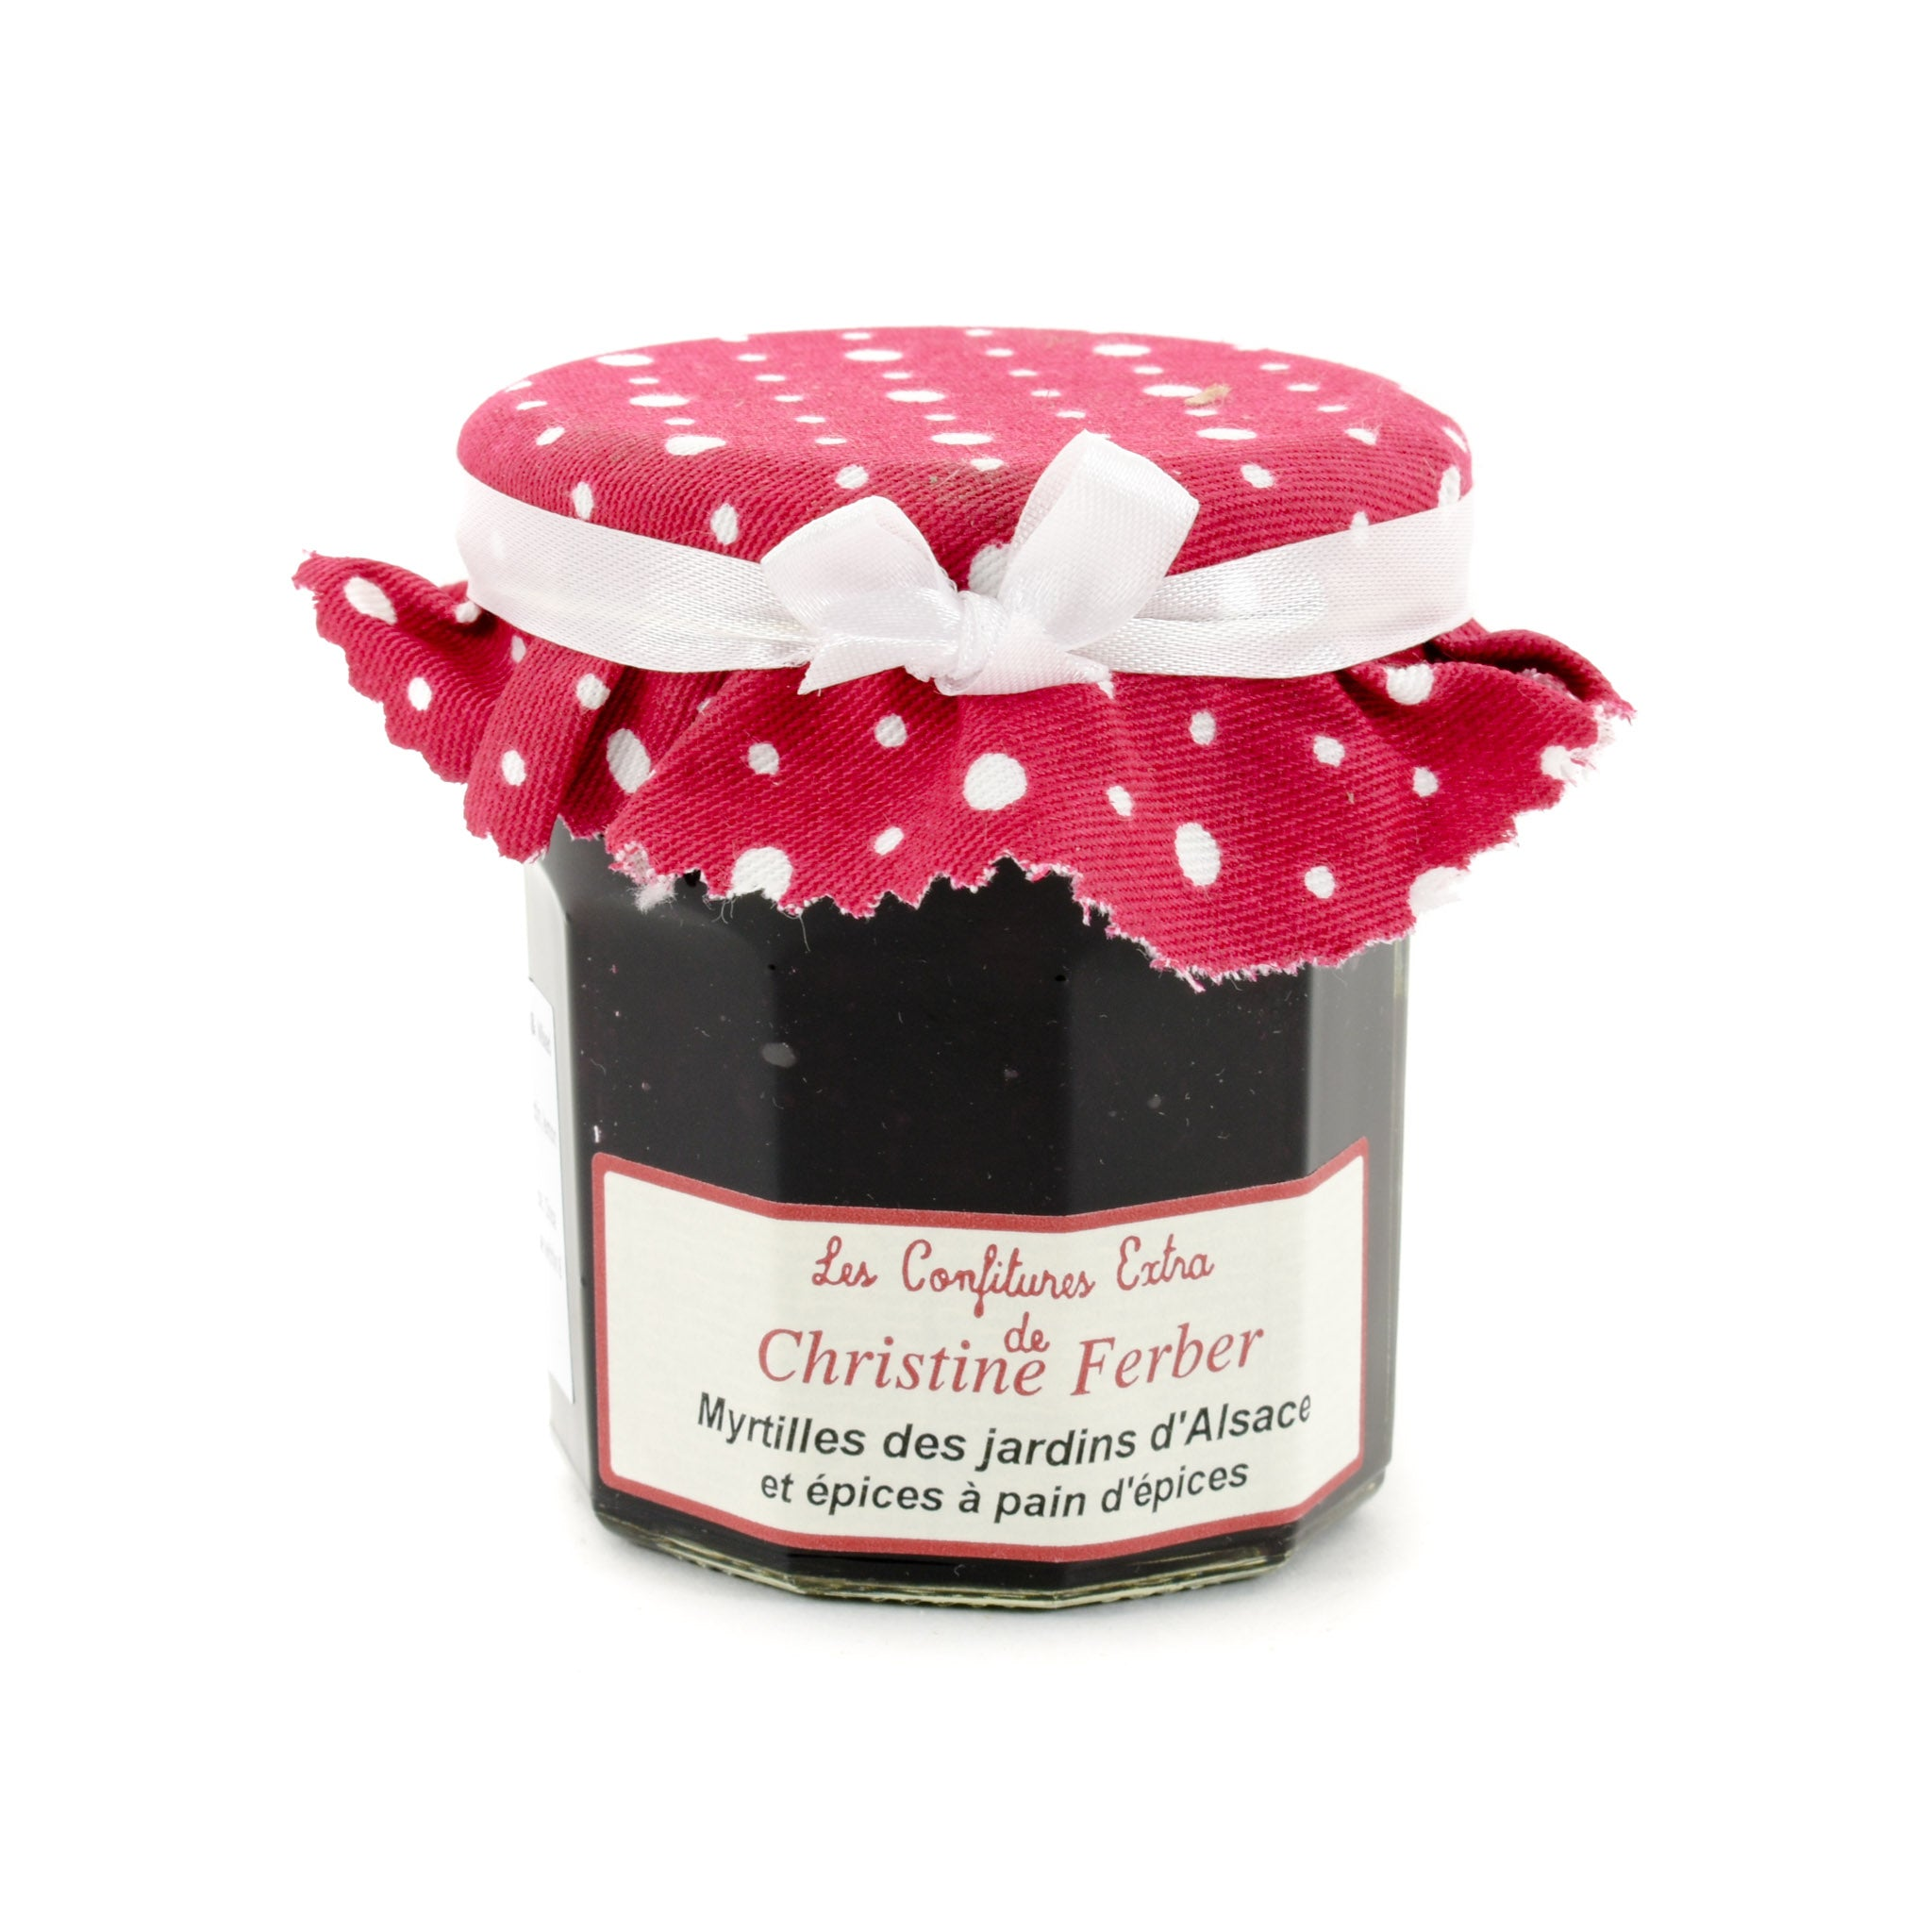 Christine Ferber Alsace Blueberry & Mixed Spice Jam 220g